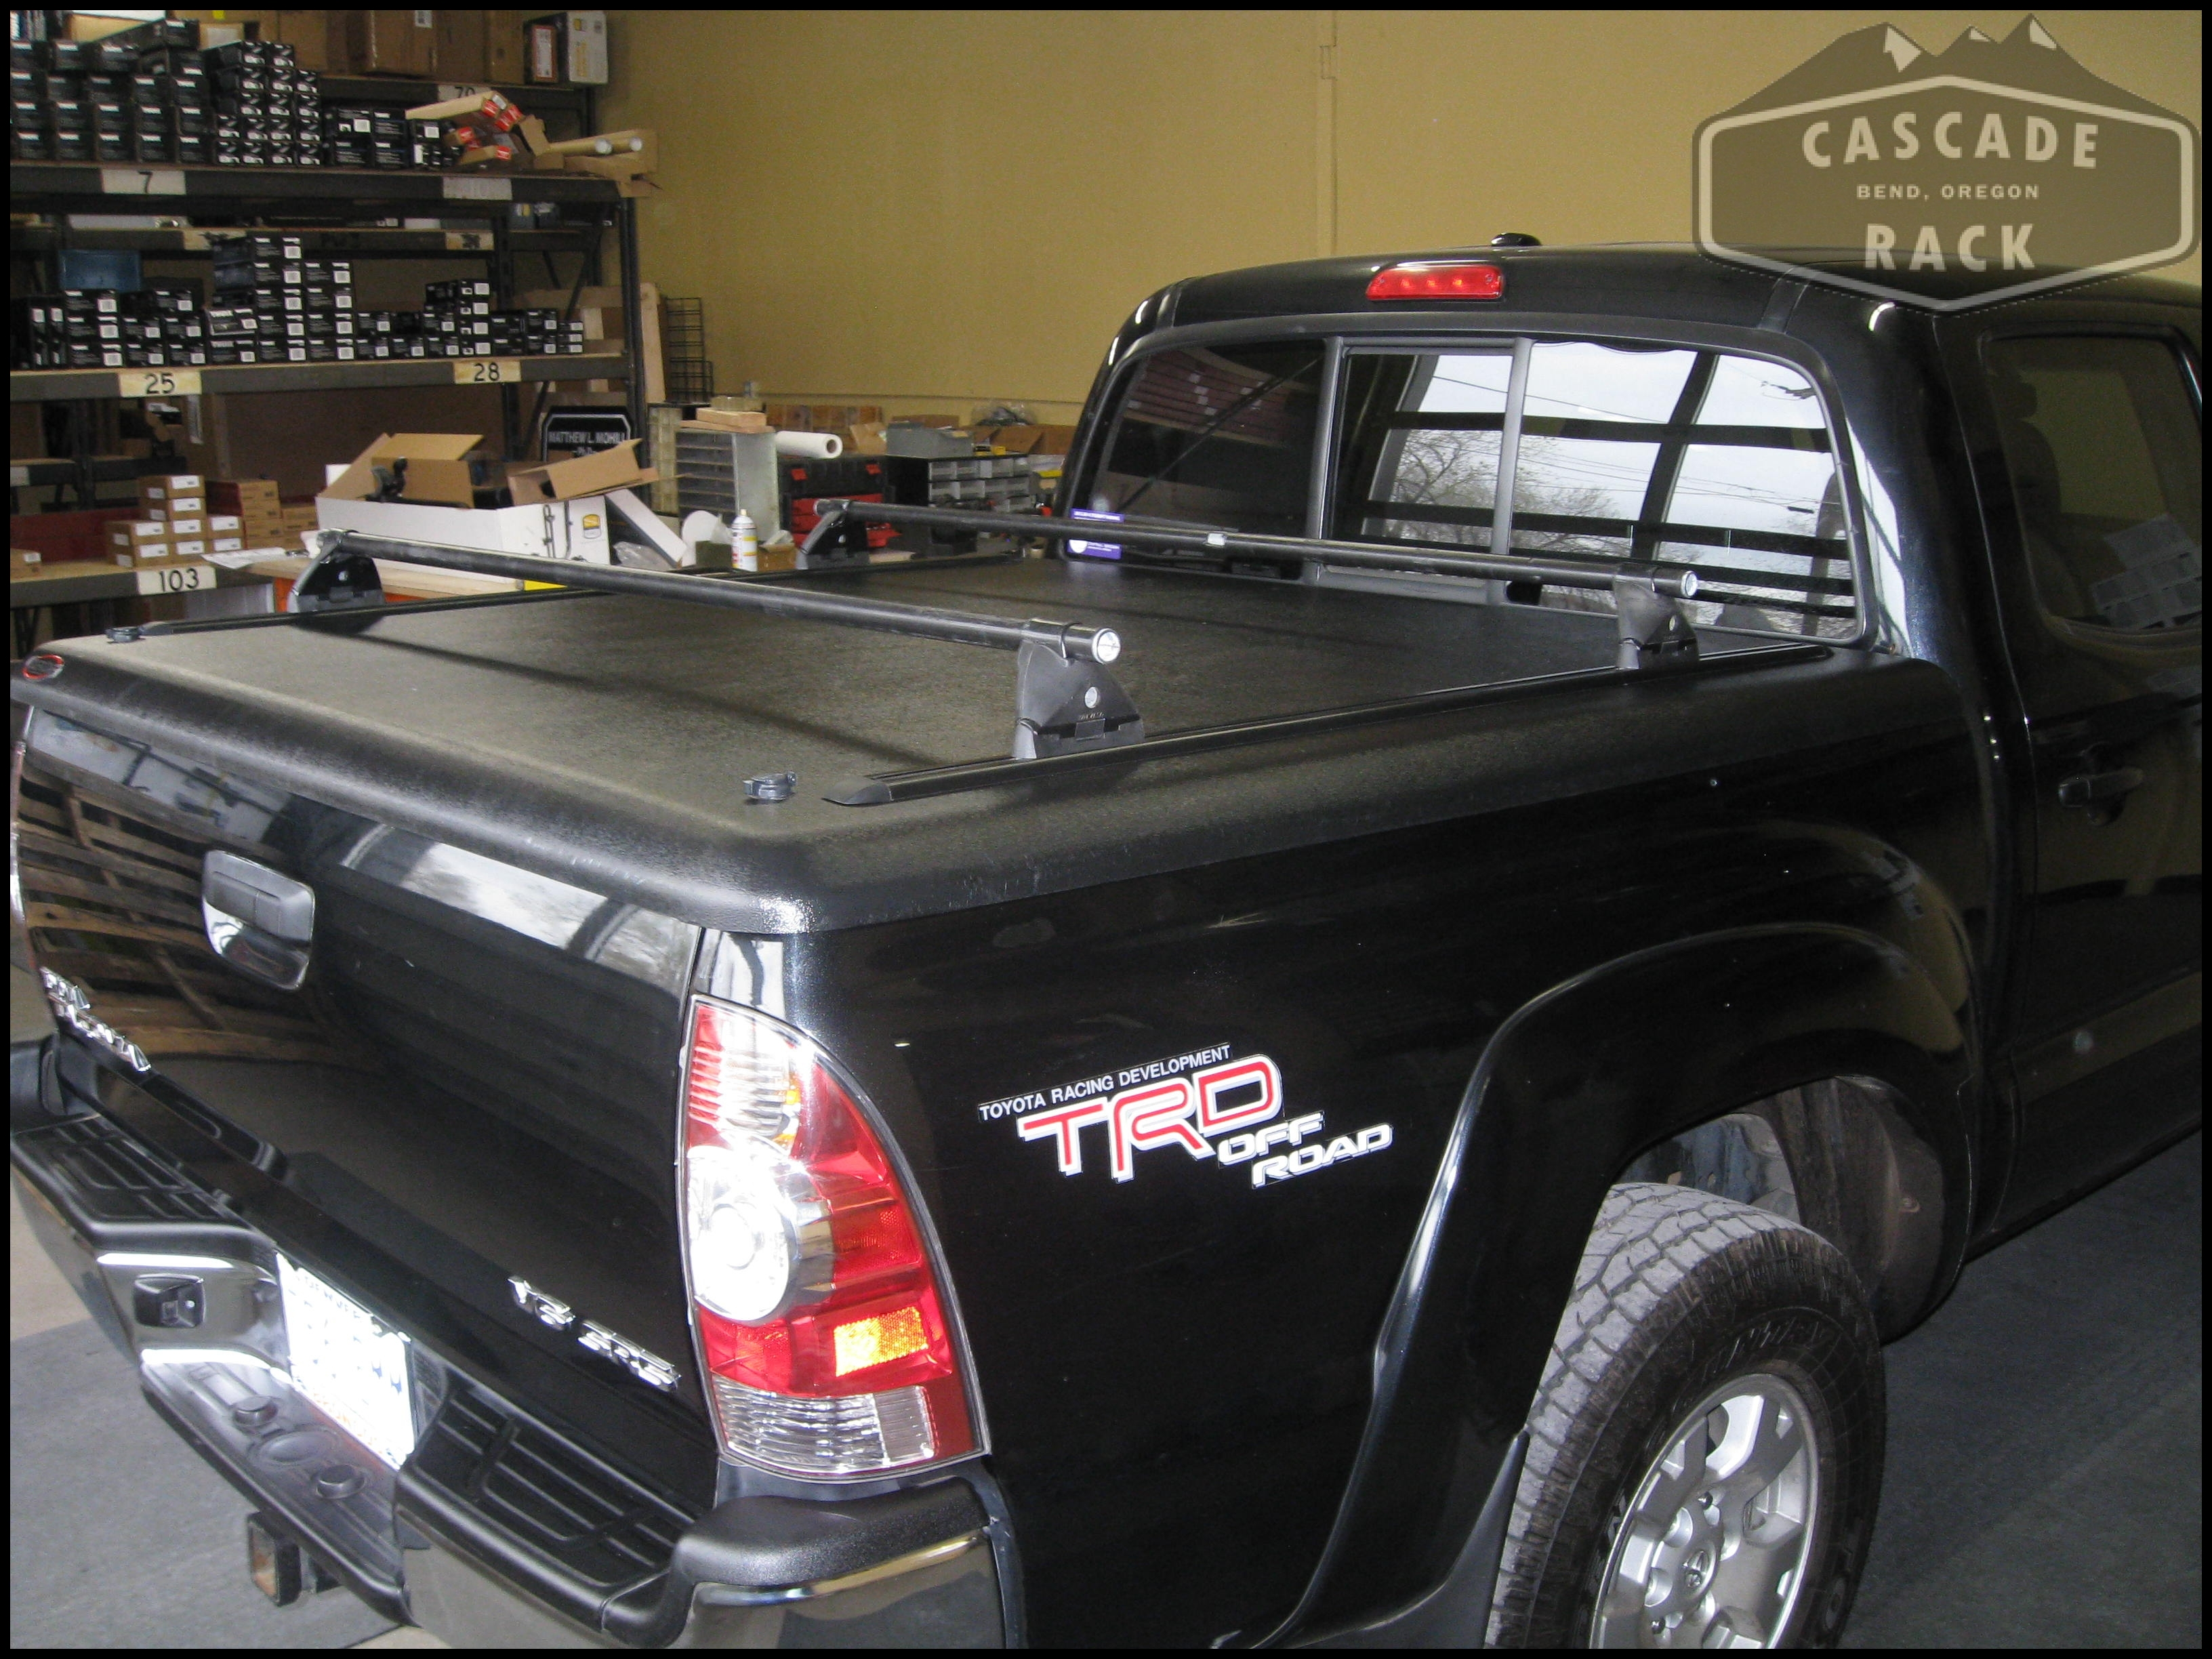 Toyota Truck Bed Cover 76 Toyota Pickup Truck Bed Covers Cascade Rack Installation Undercover